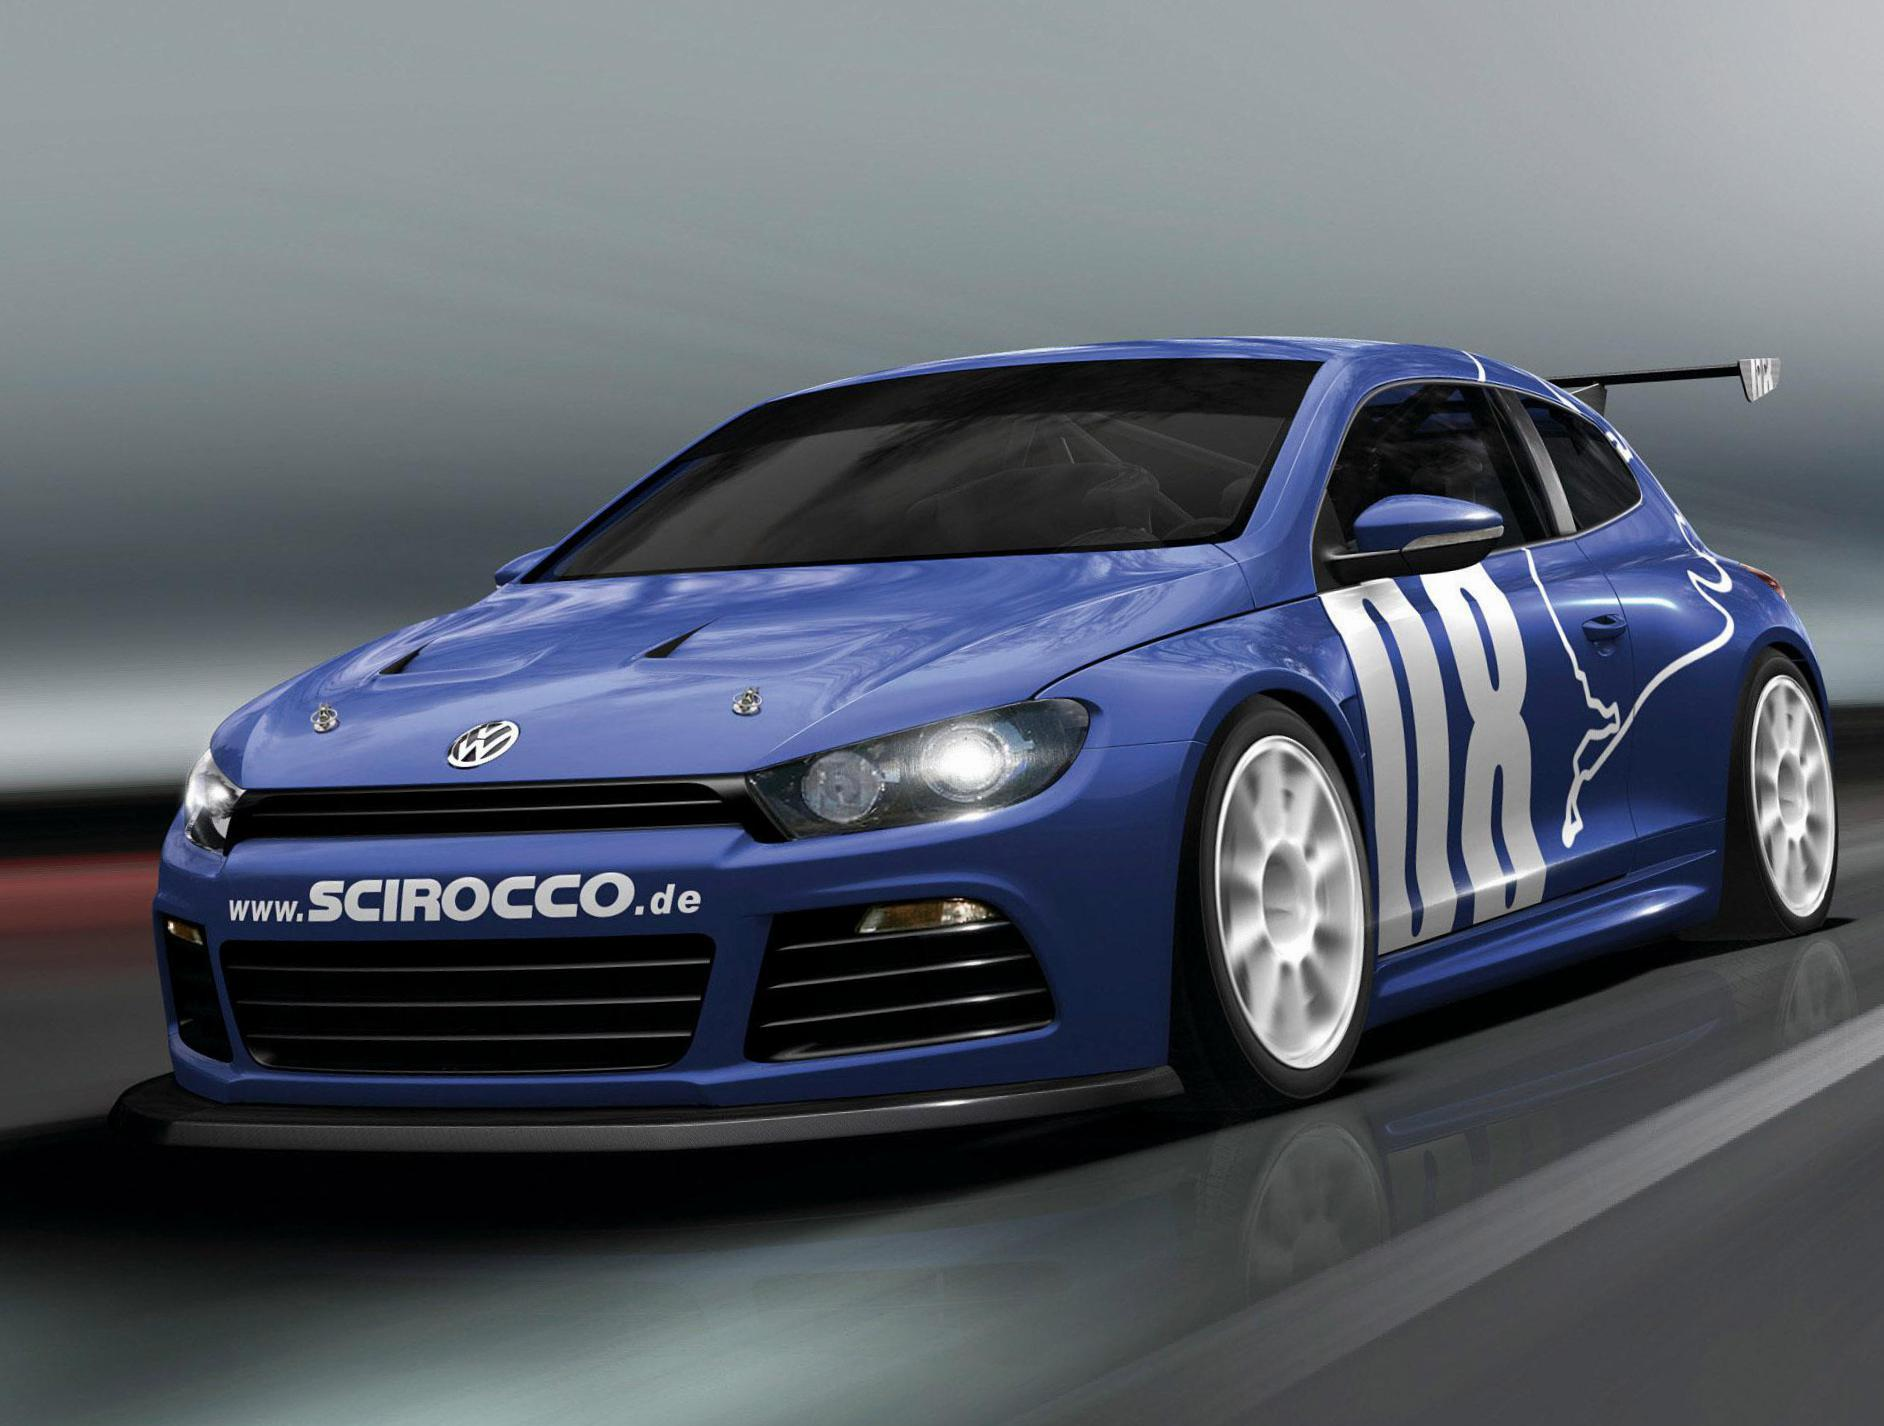 Scirocco Volkswagen review 2010